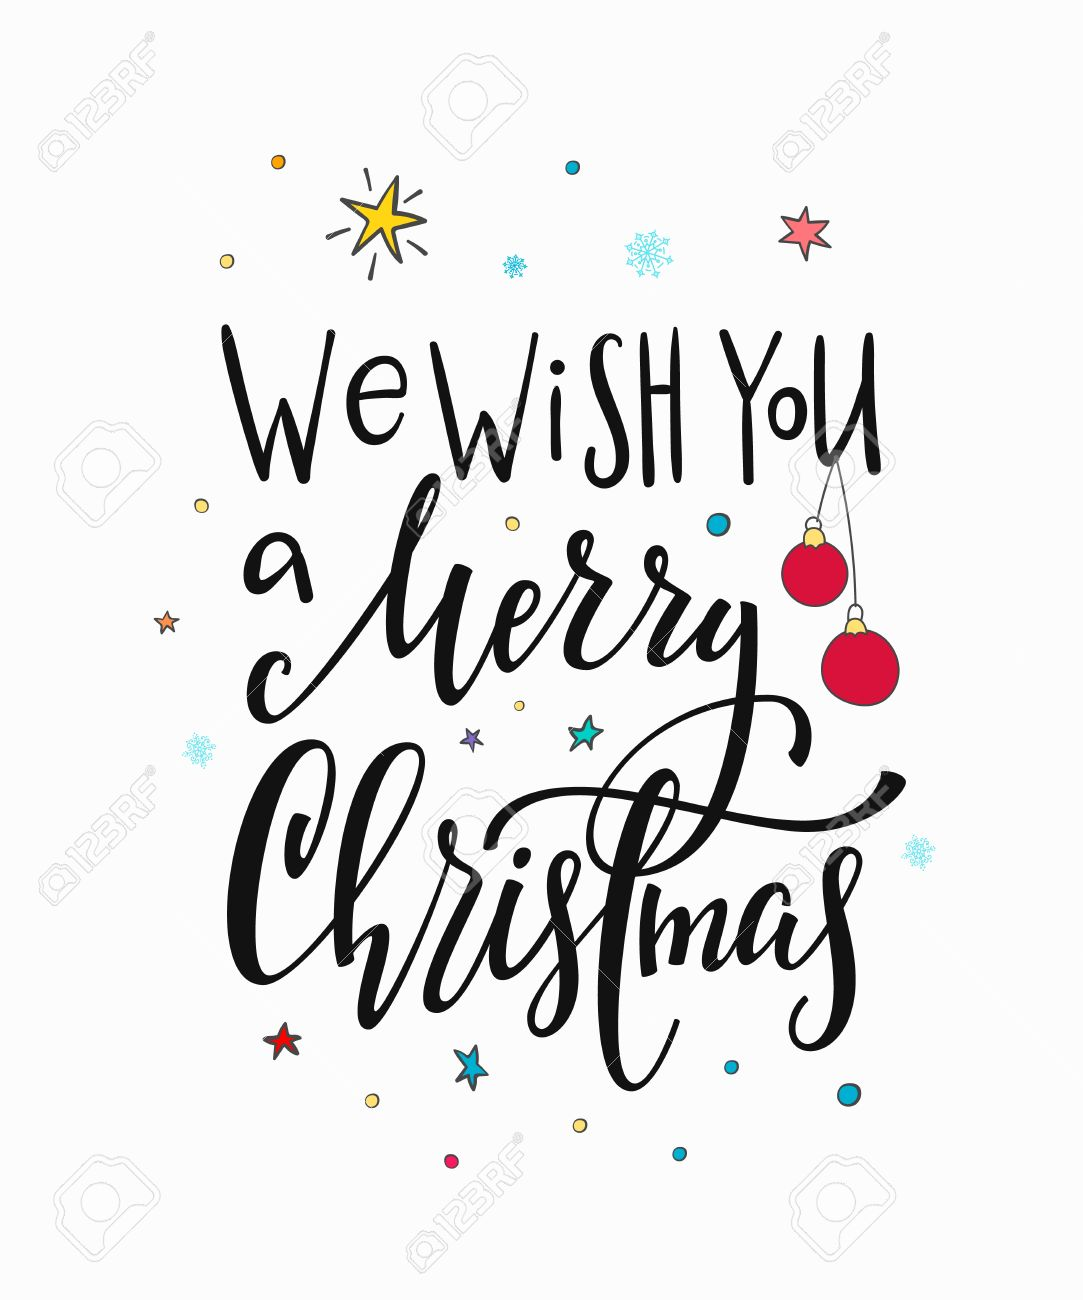 we wish you merry christmas happy new year simple lettering royalty free cliparts vectors and stock illustration image 85649374 we wish you merry christmas happy new year simple lettering